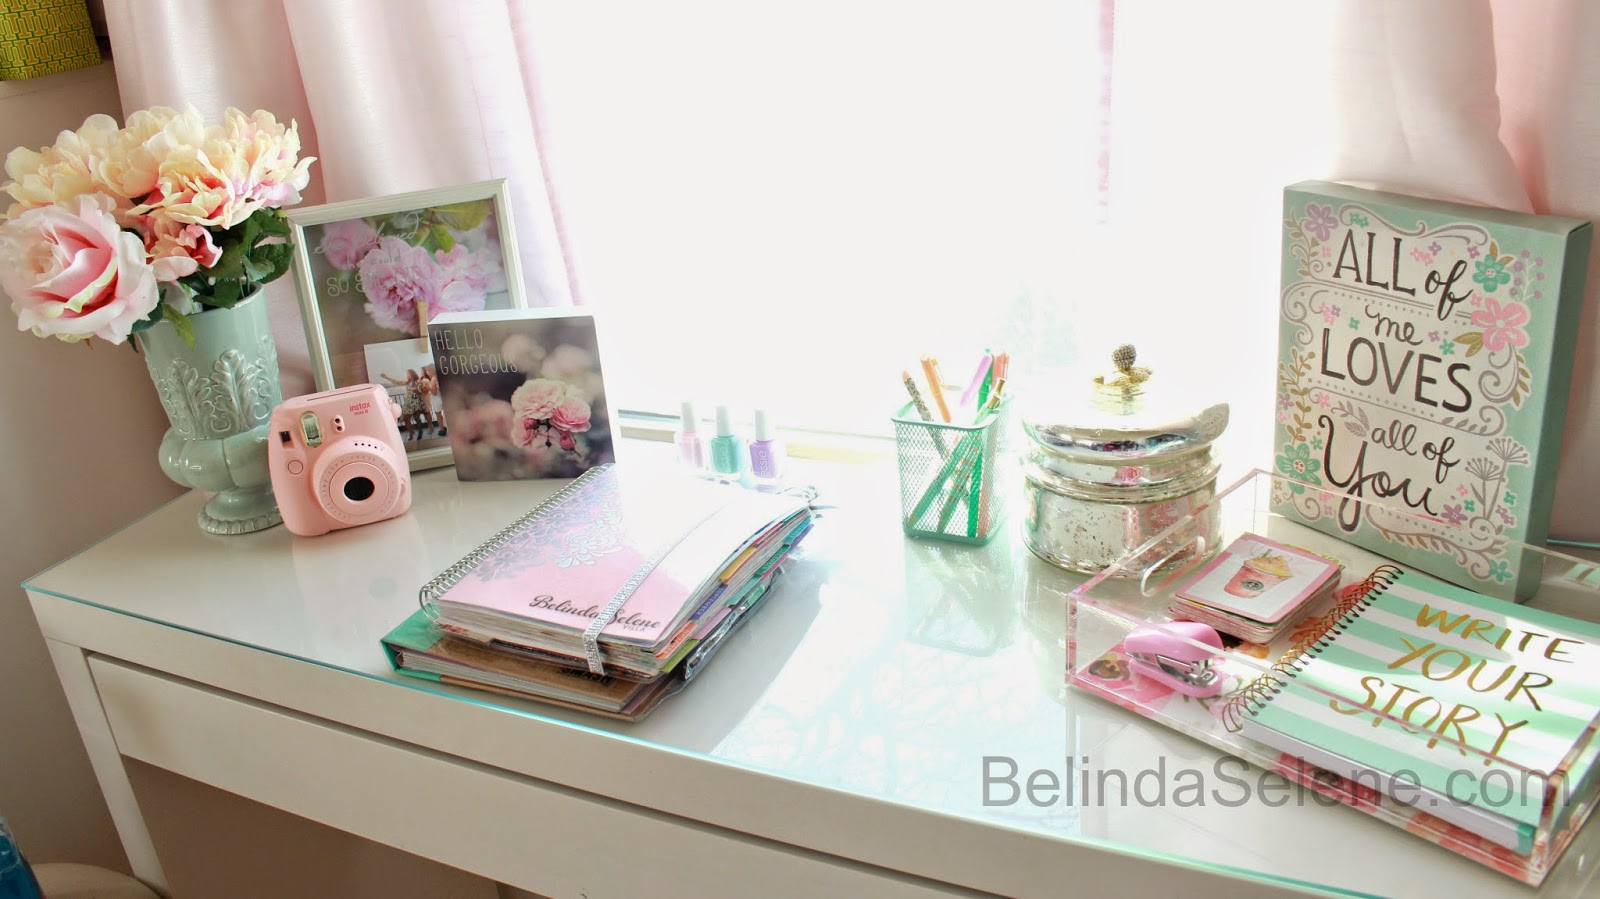 Belindaselene diy tumblr inspired office desk space for Cute diy bedroom ideas